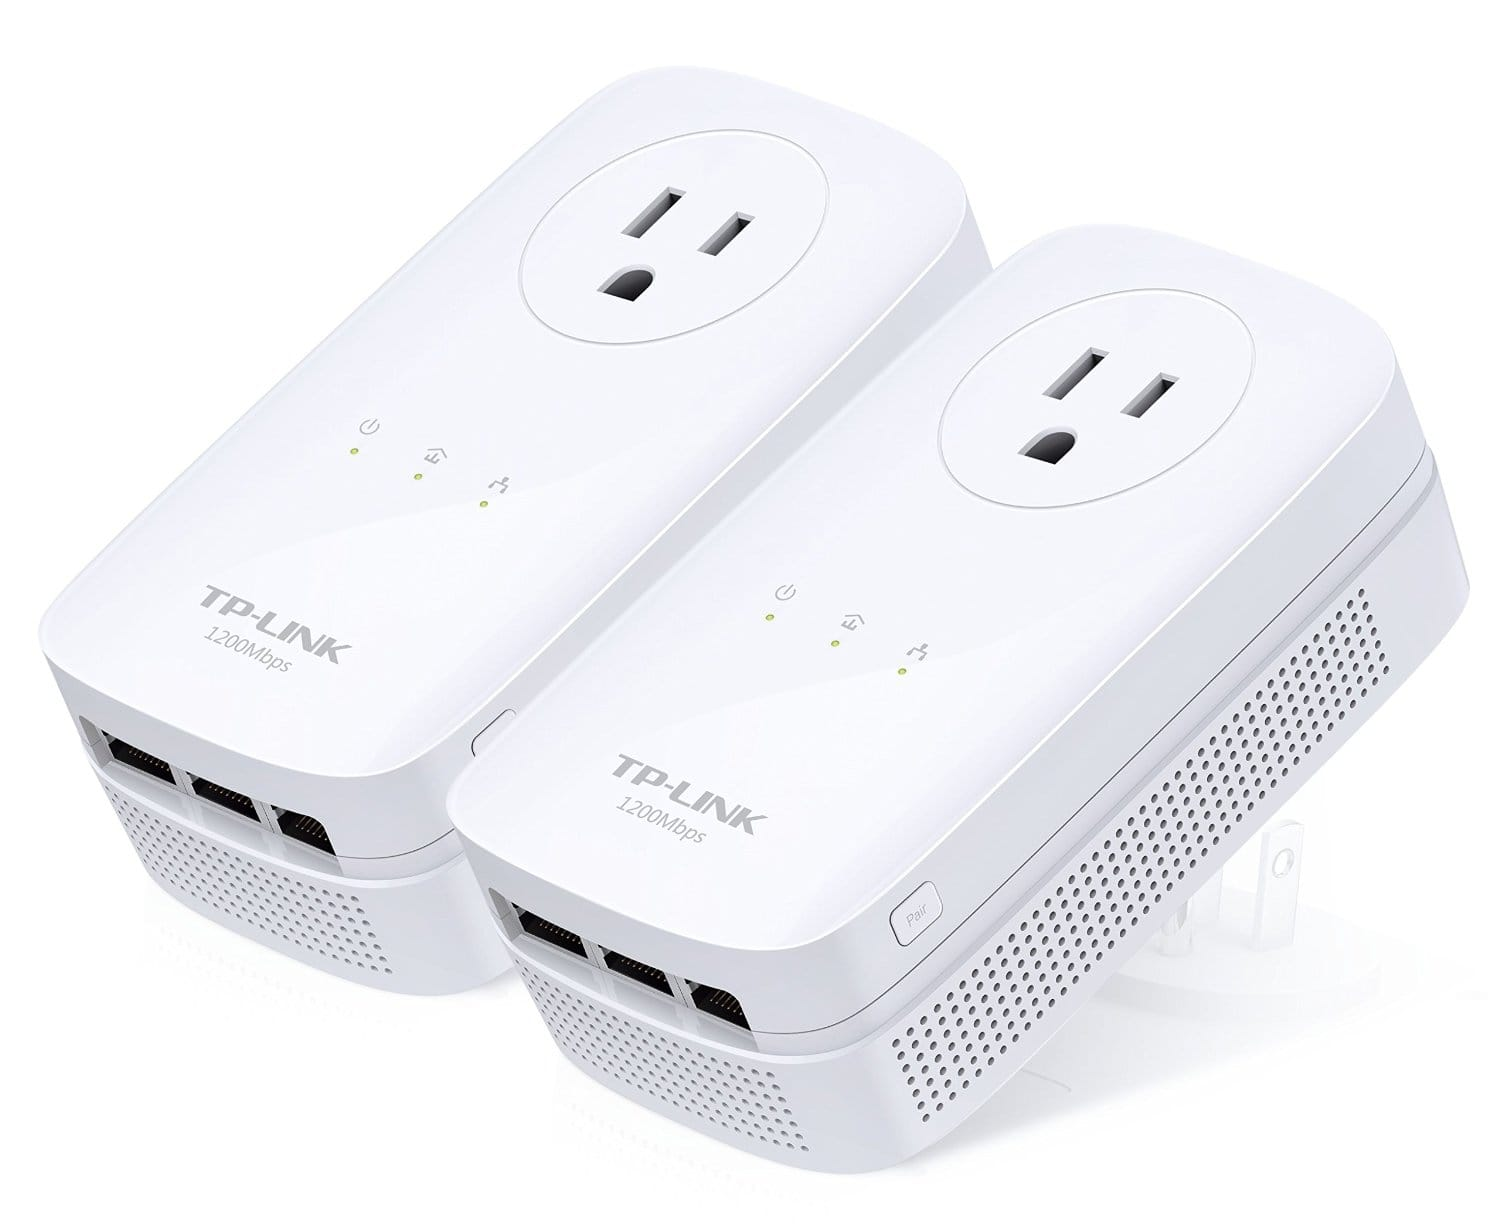 TP-LINK AV1200 3-Port Gigabit Passthrough Powerline Starter Kit @ Costco $69.99 free shipping